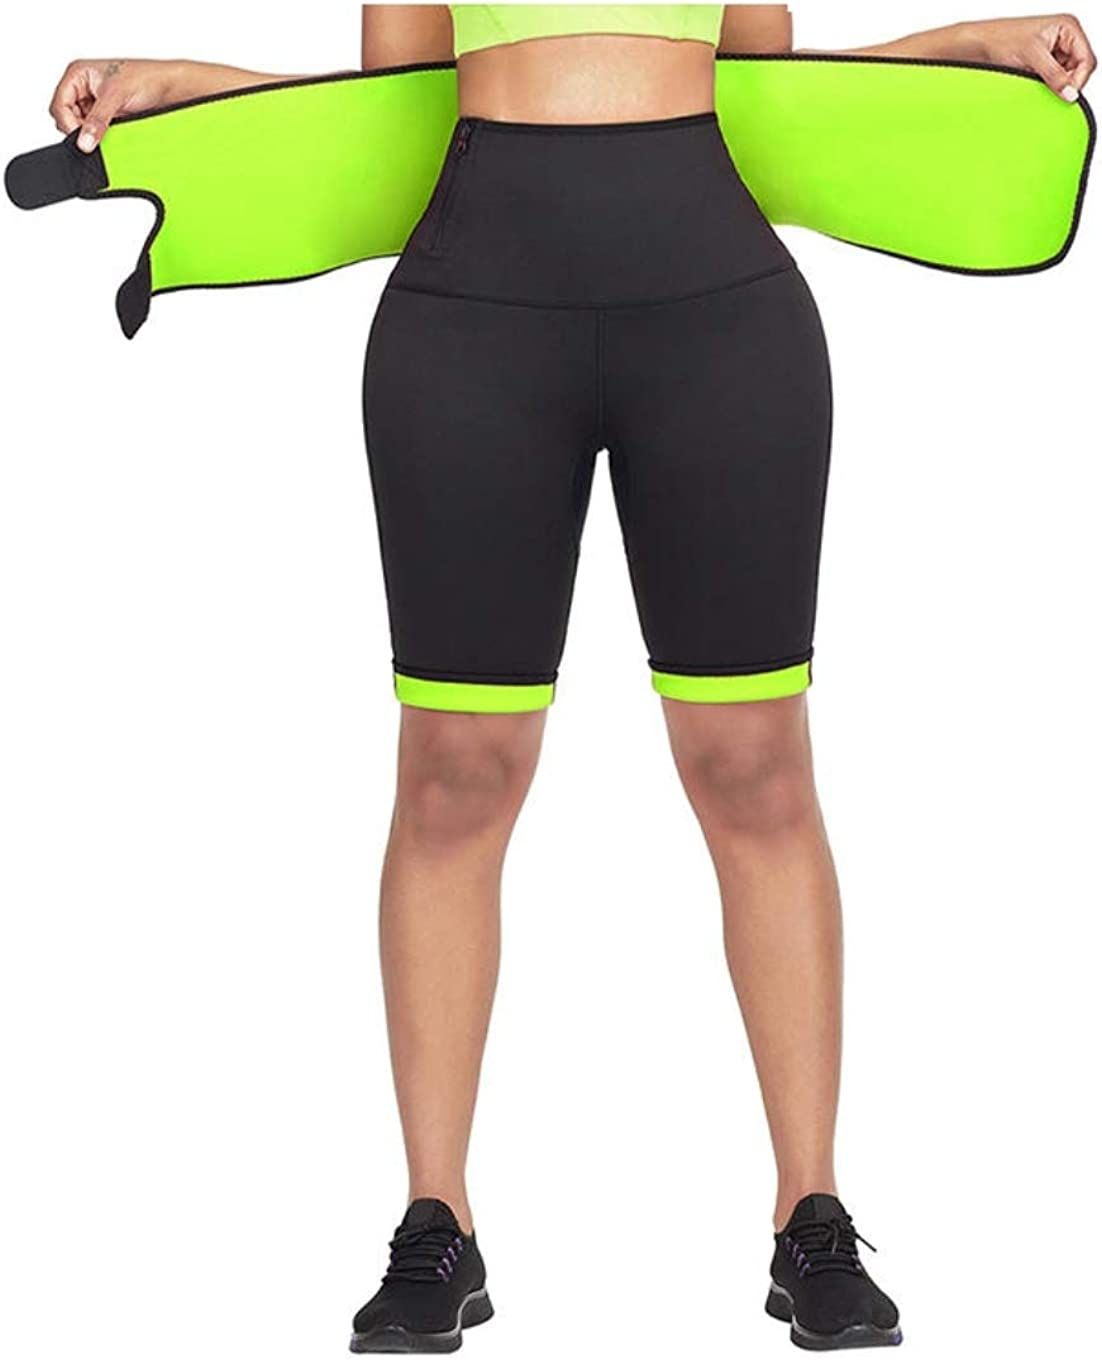 Women Workout Compression Sauna Shorts in with Built Train Finally popular Inexpensive brand Waist